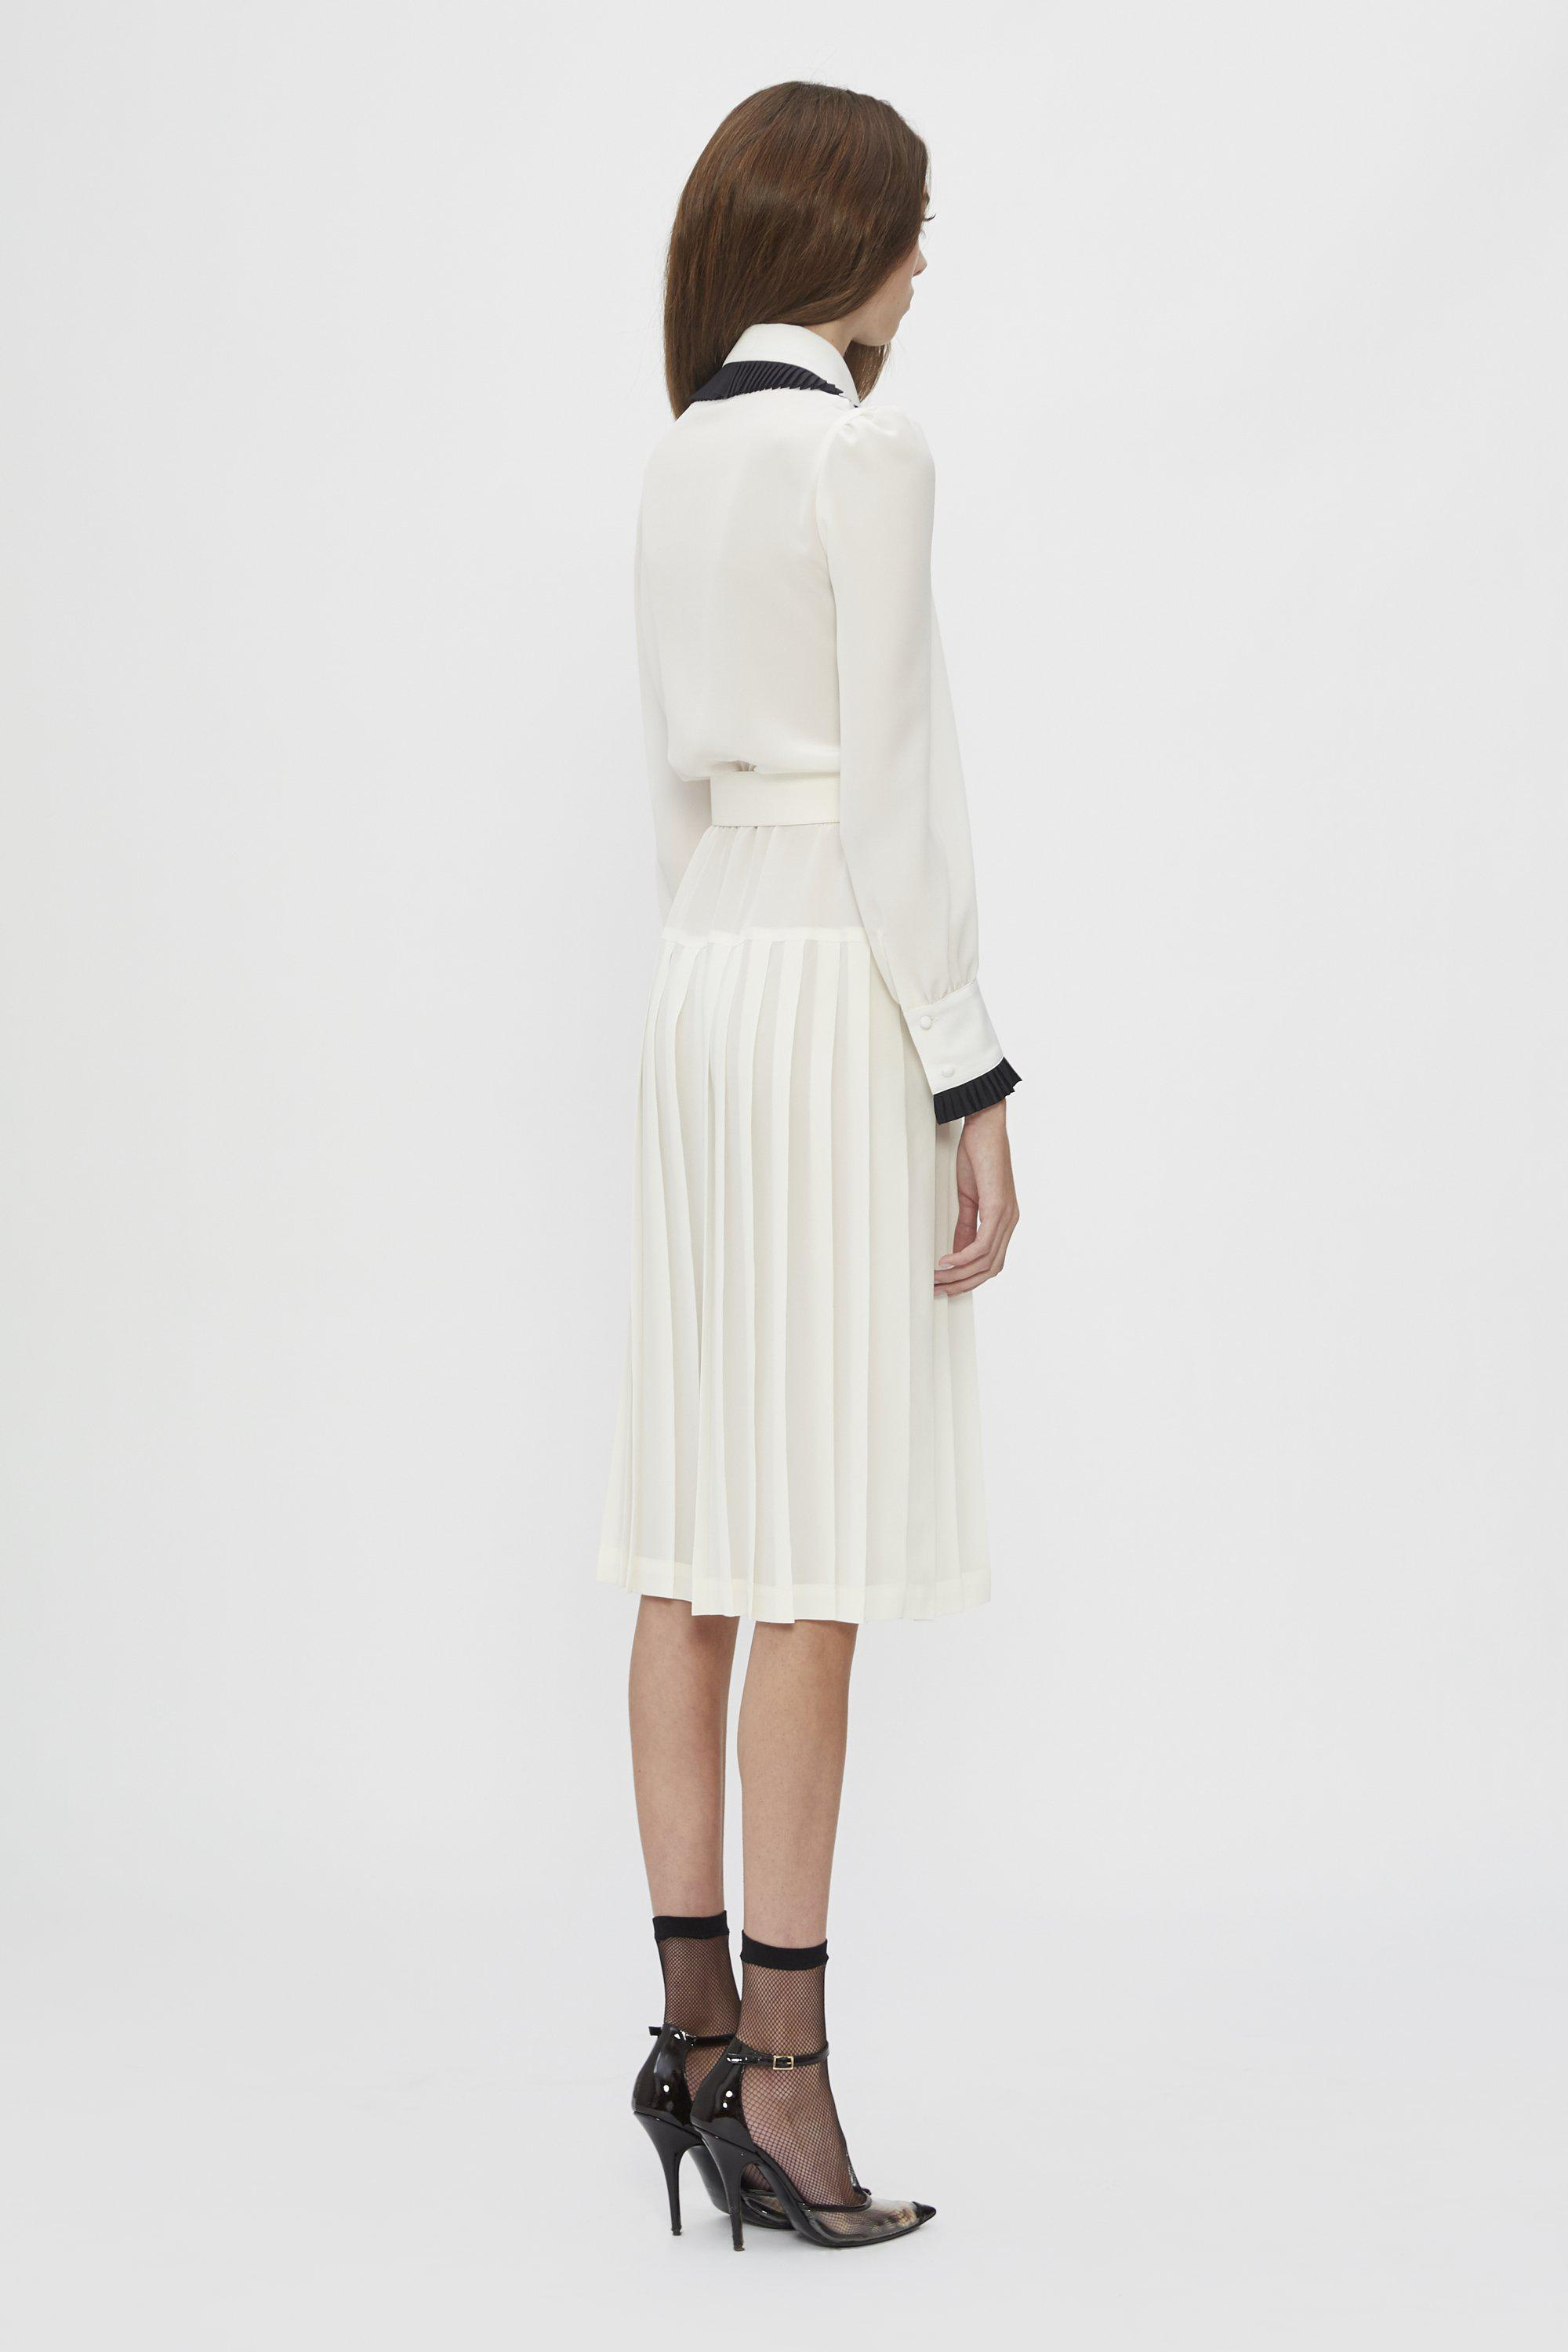 OFF WHITE AND BLACK BELTED SILK PLEATED COLLAR DRESS 1